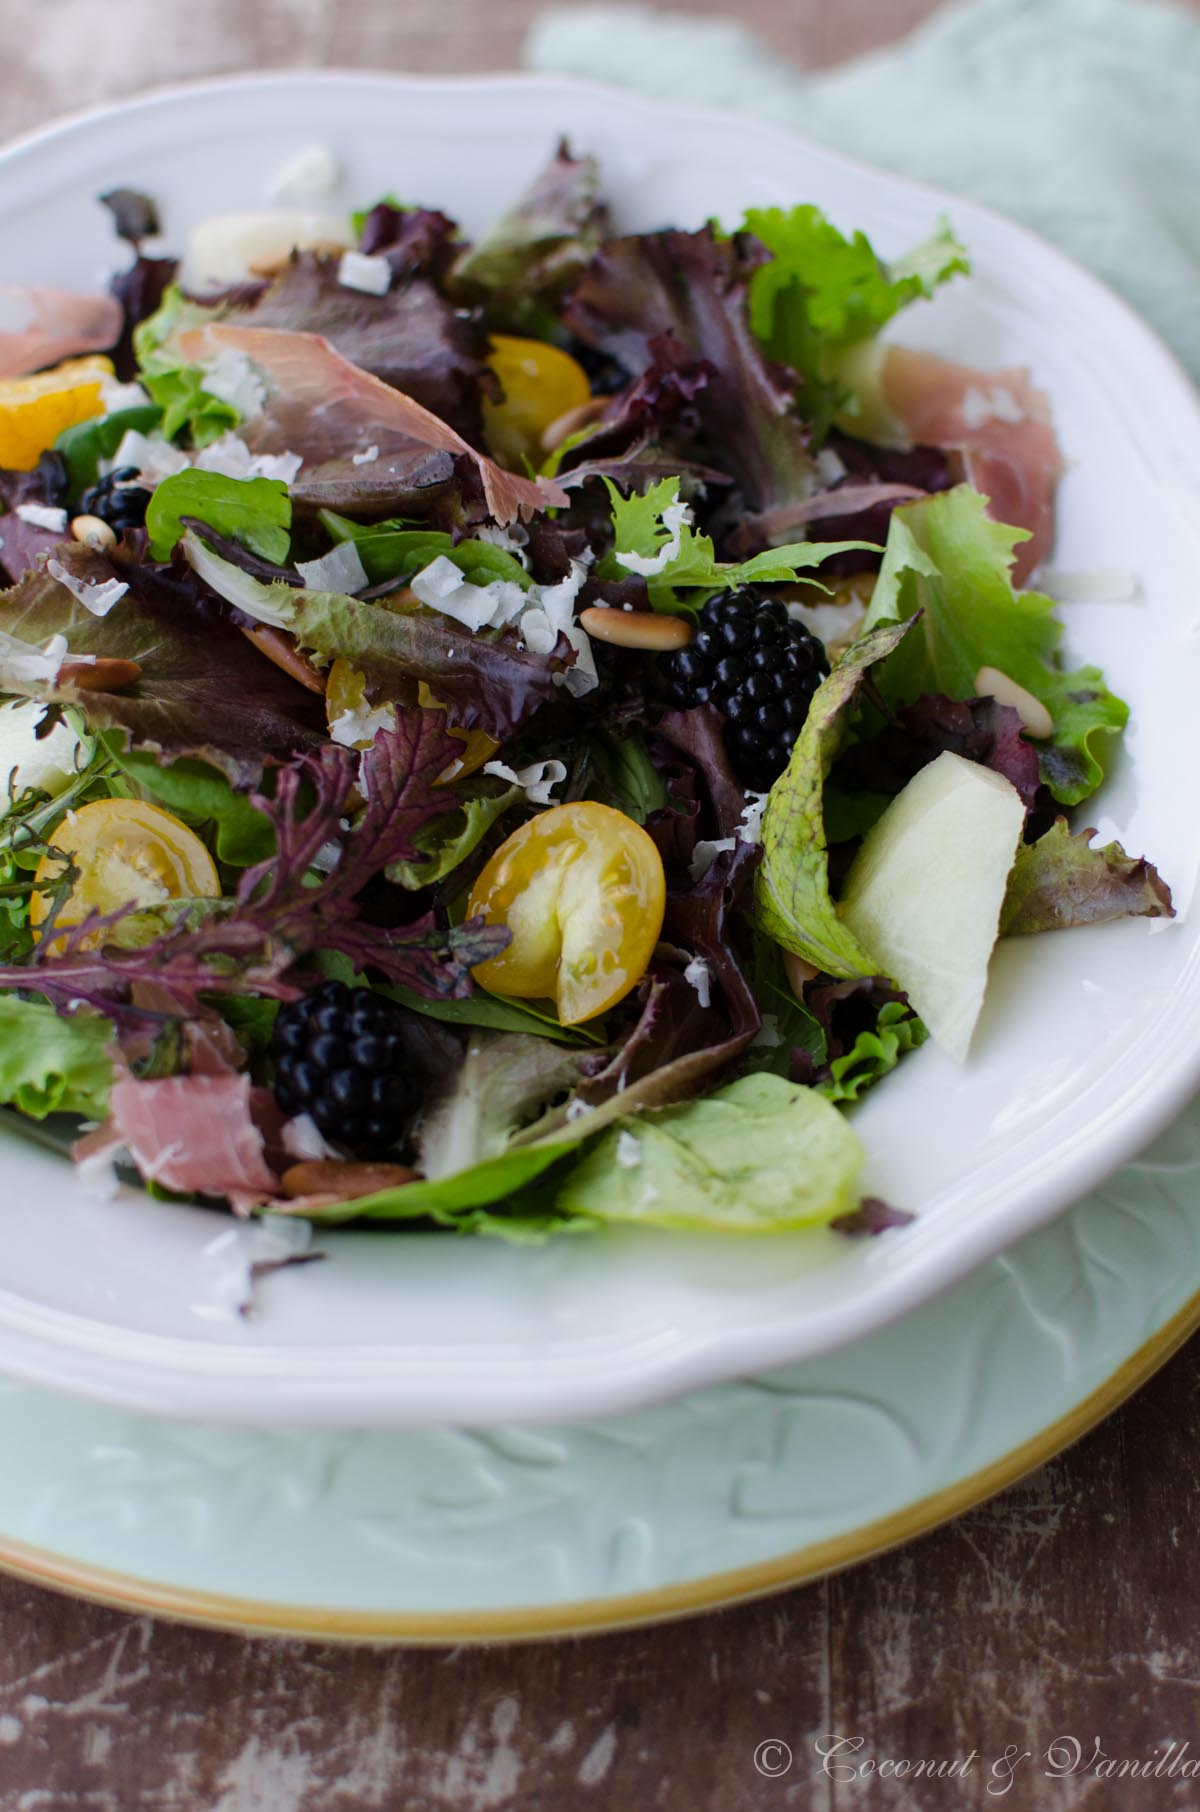 Mesclun salad with blackberries, cantaloupe and prosciutto